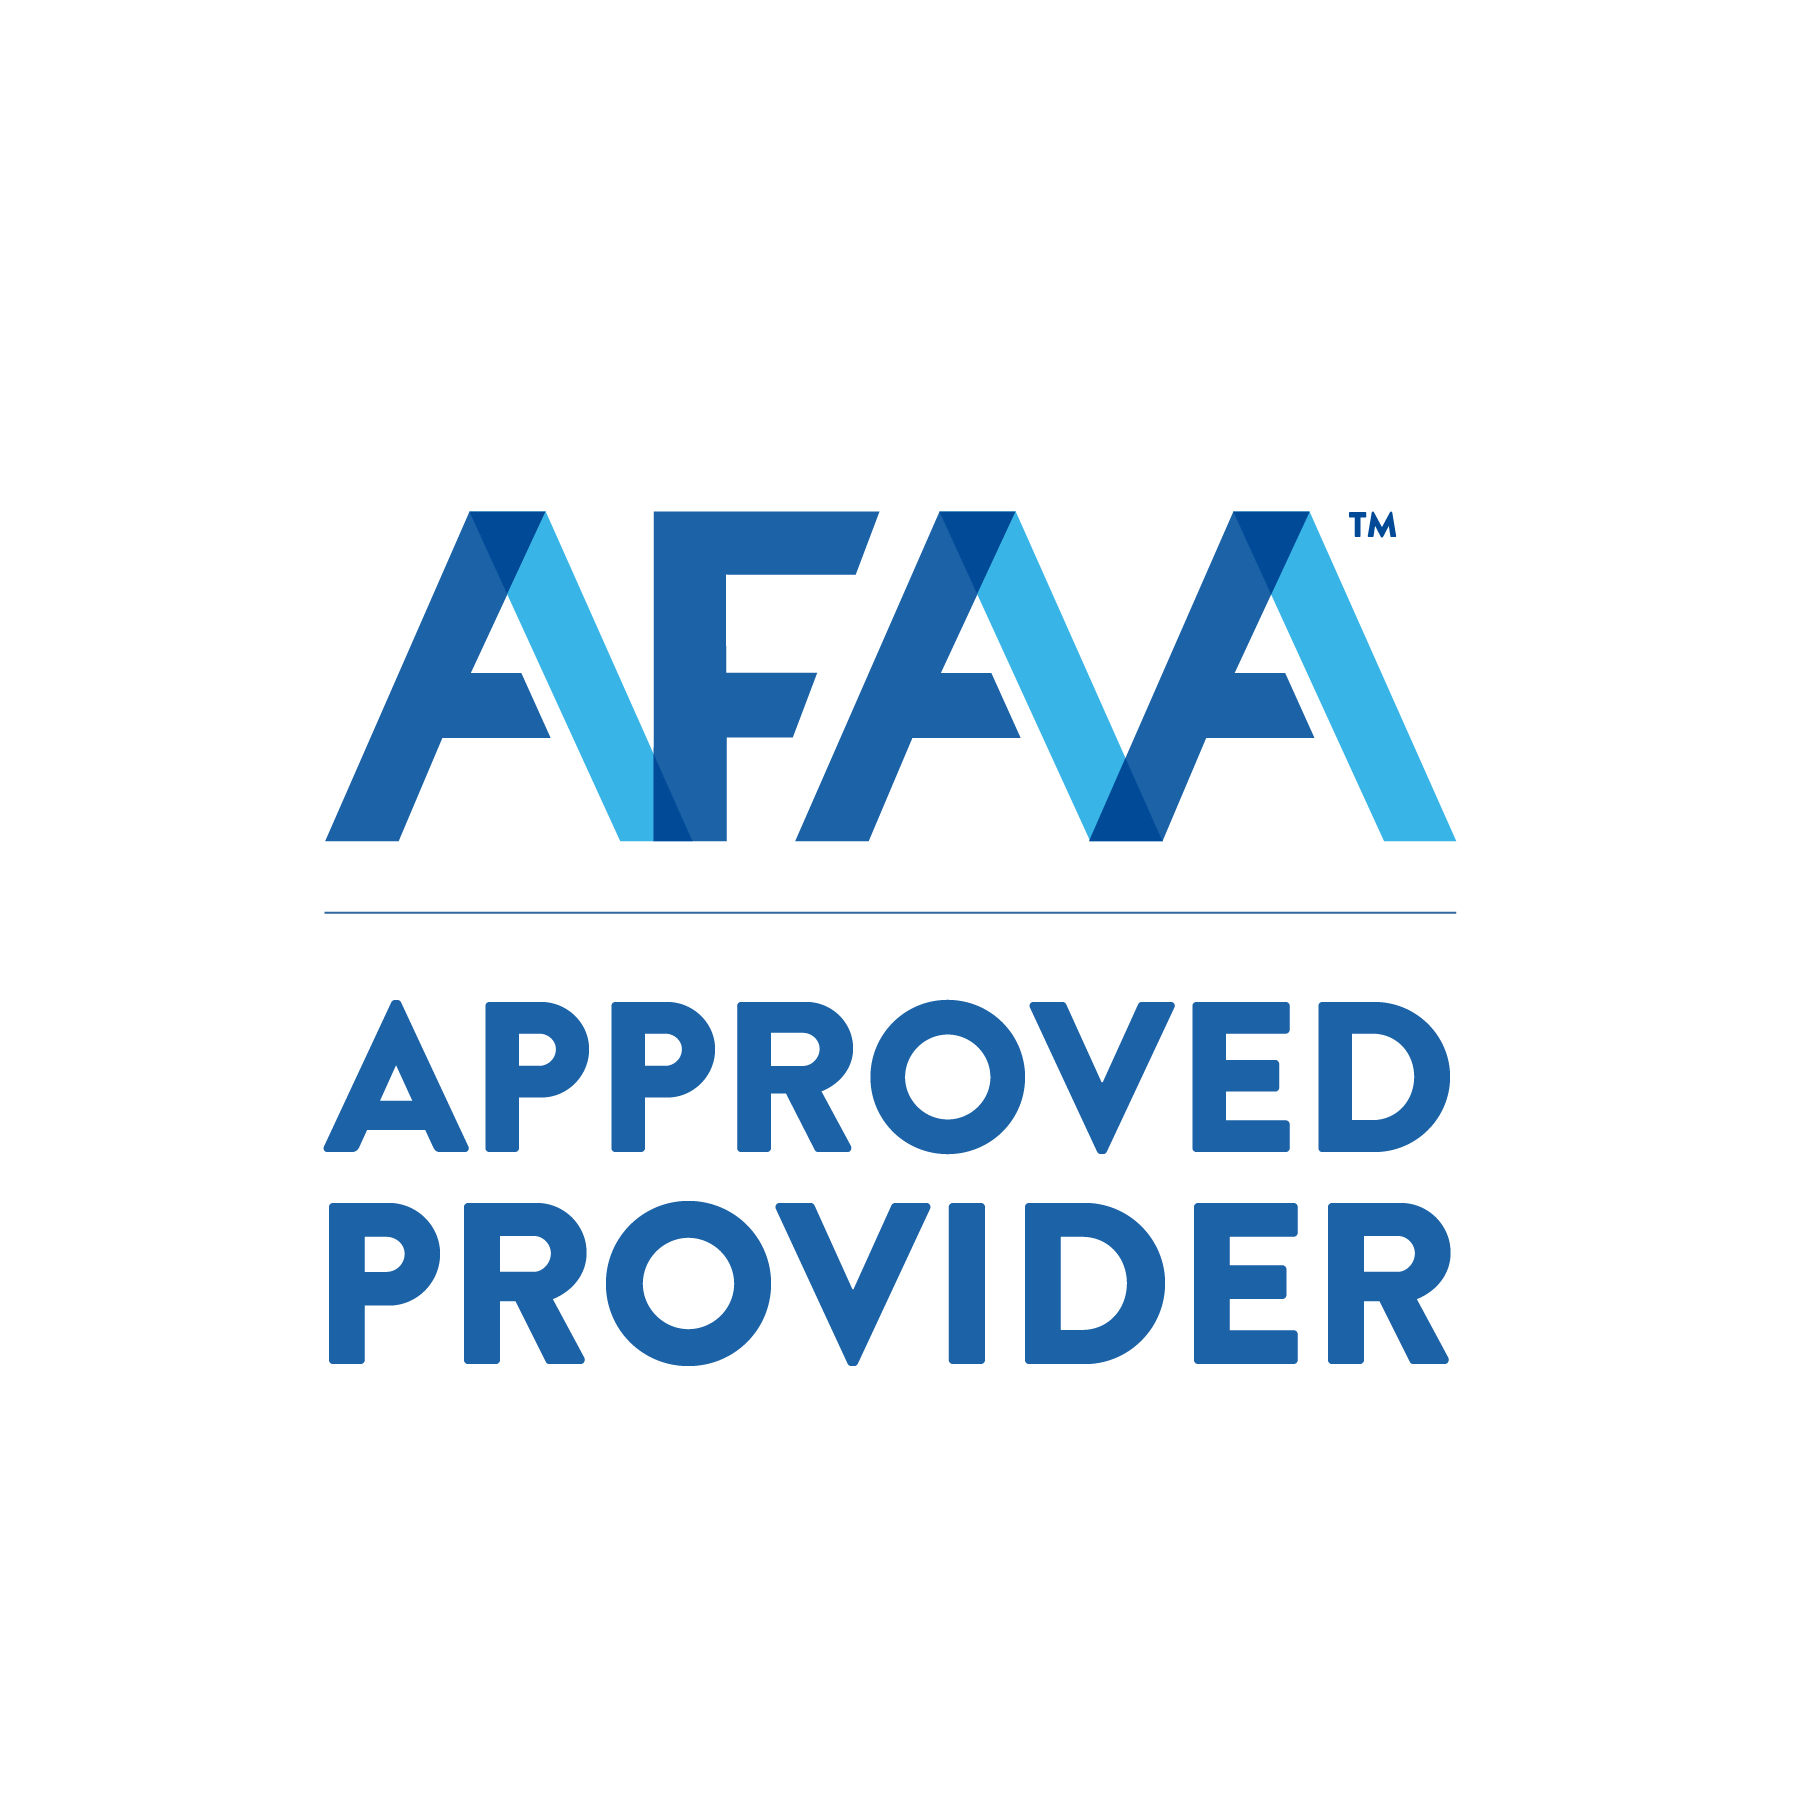 AFAA Approved Provider